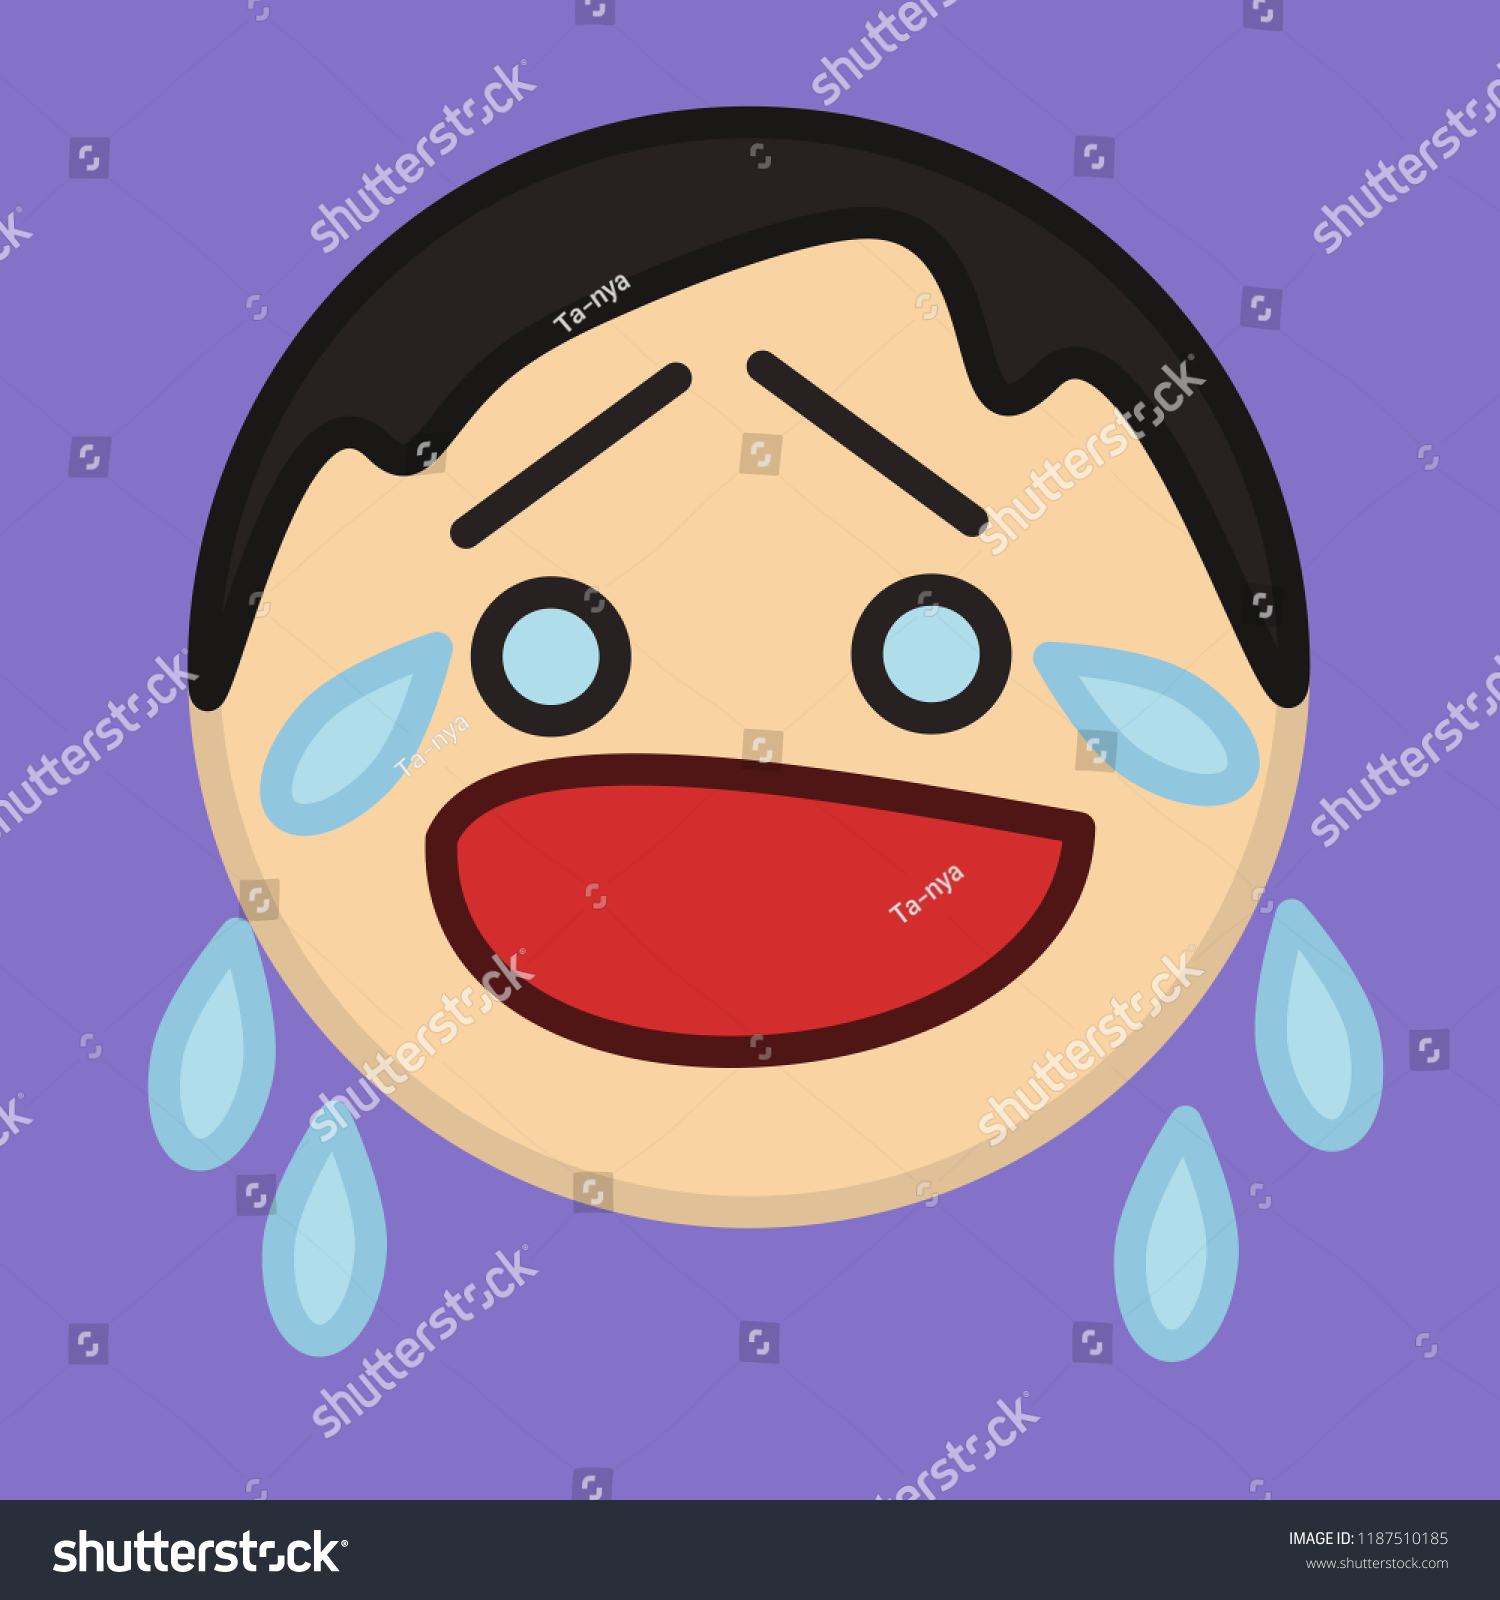 Emoticon Crying Character Tears Raised Eyebrows Stock Vector